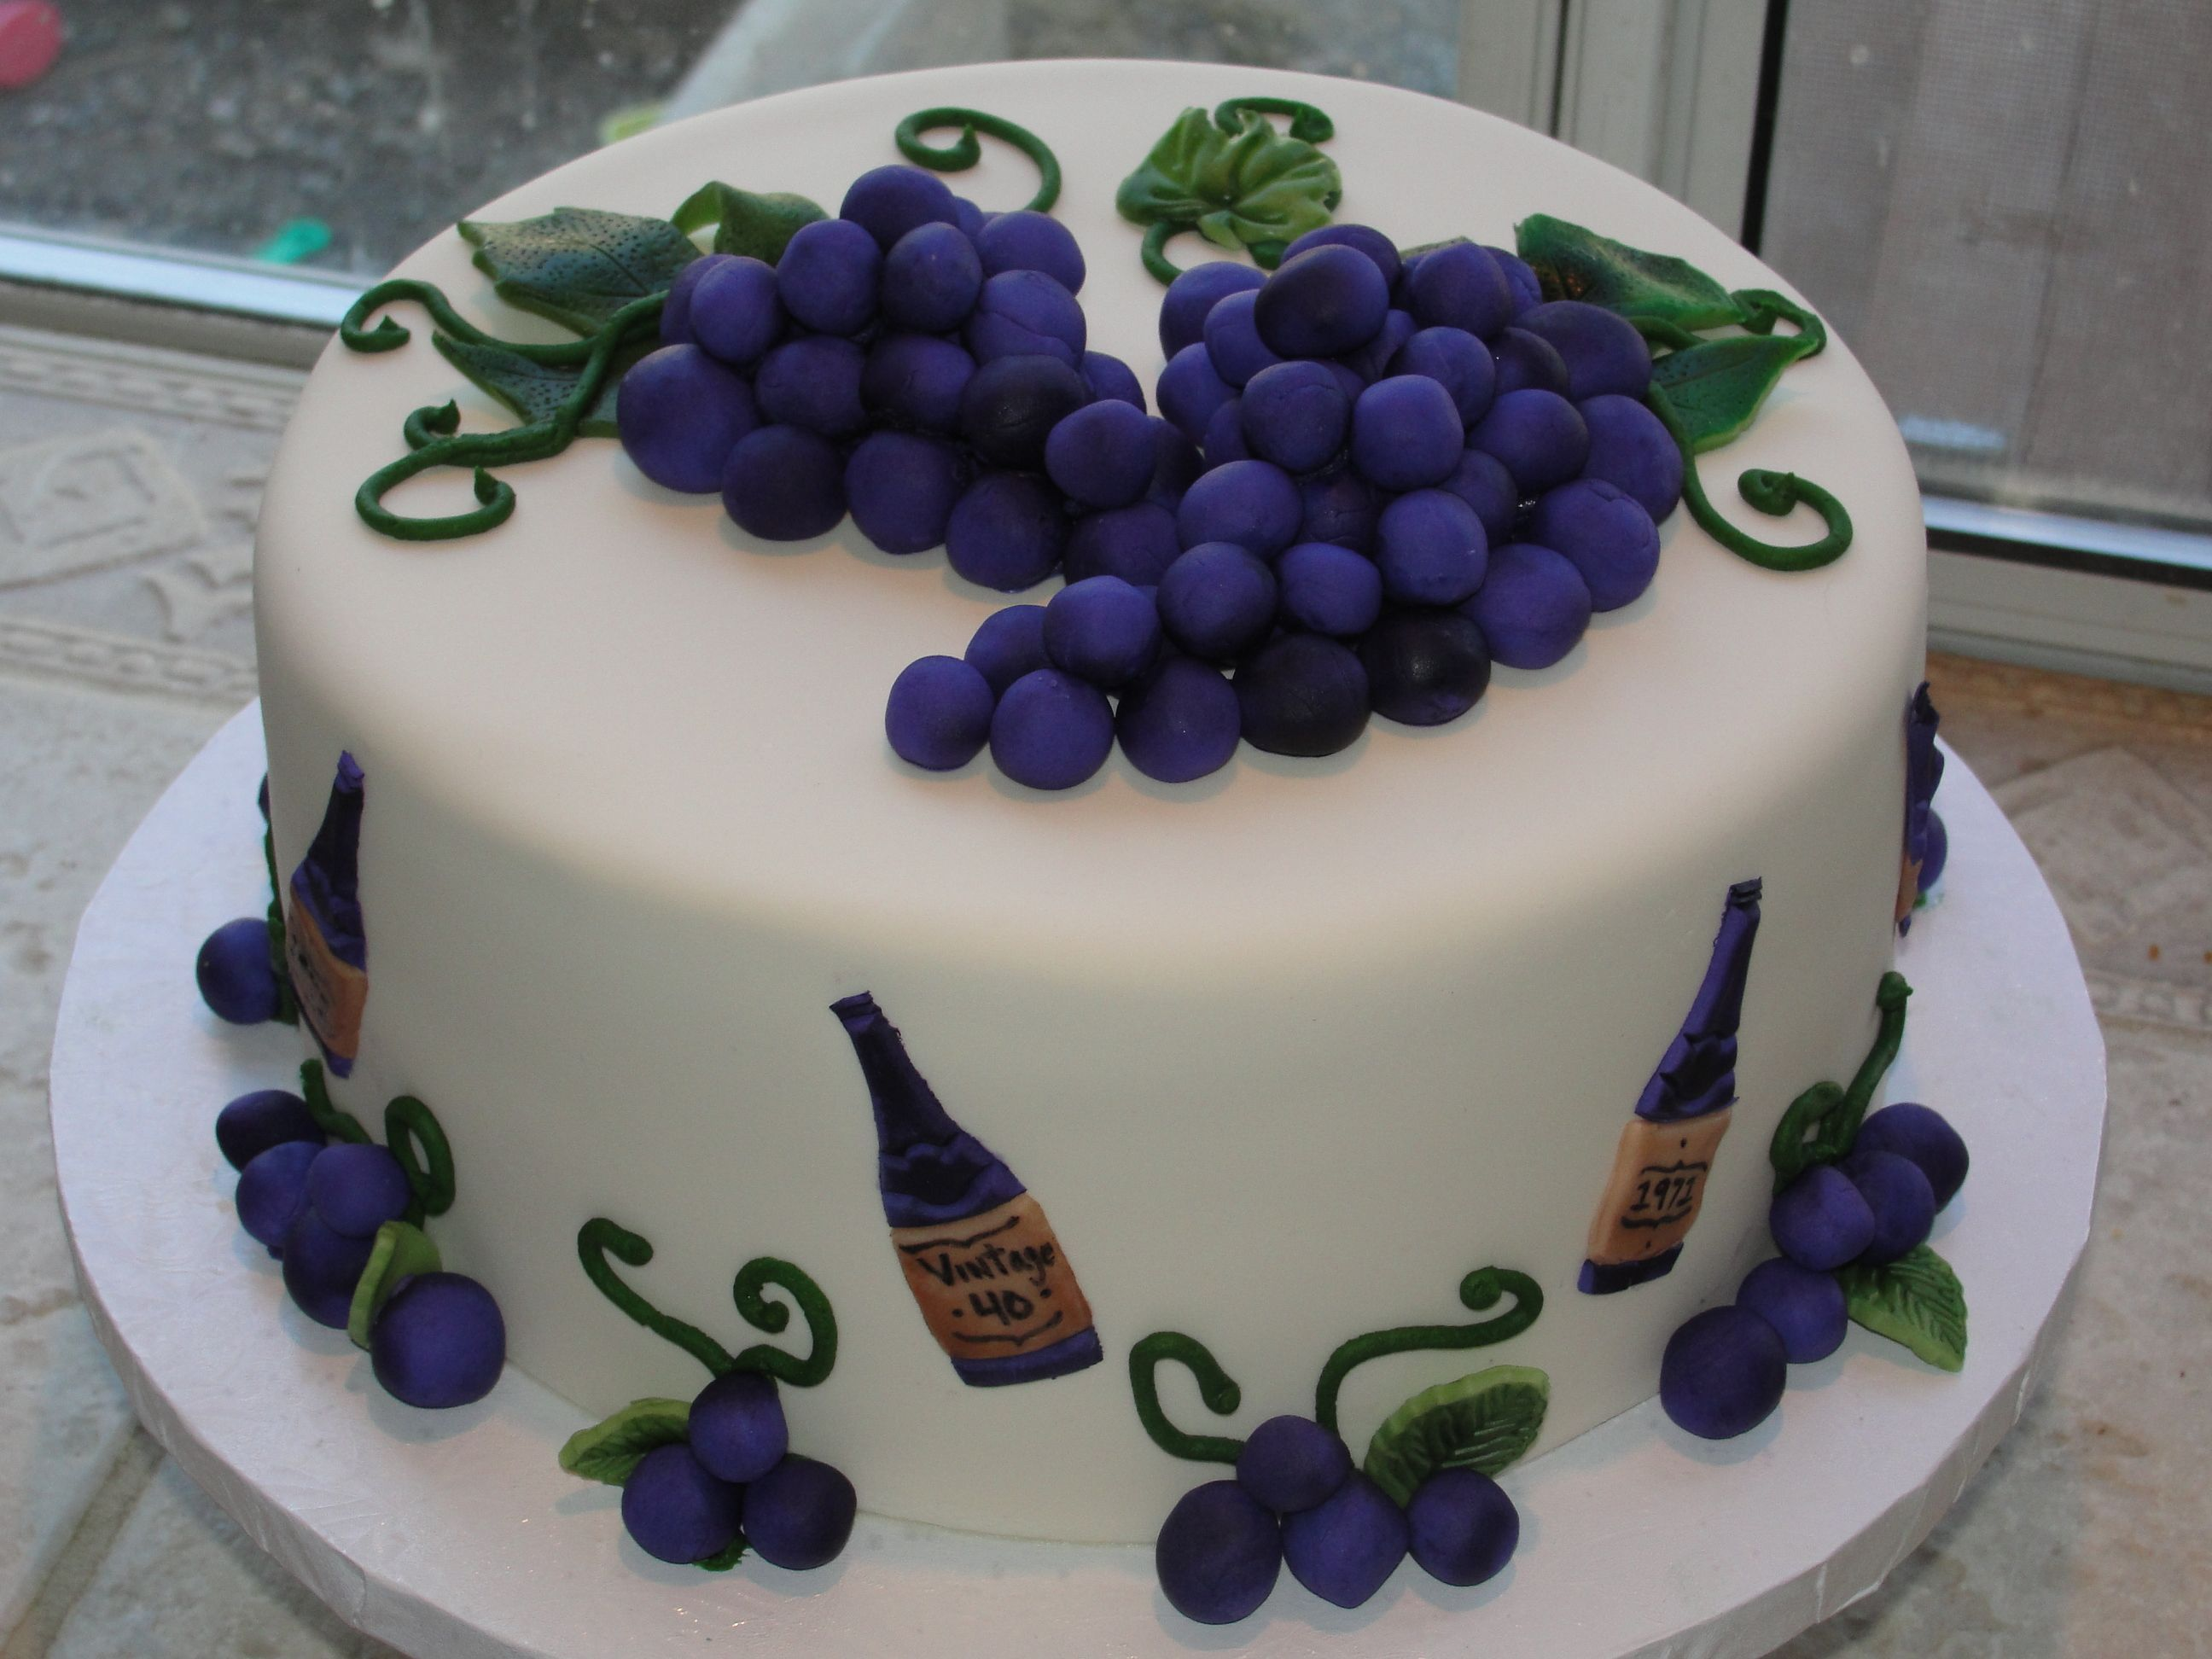 How to make a cake with grapes